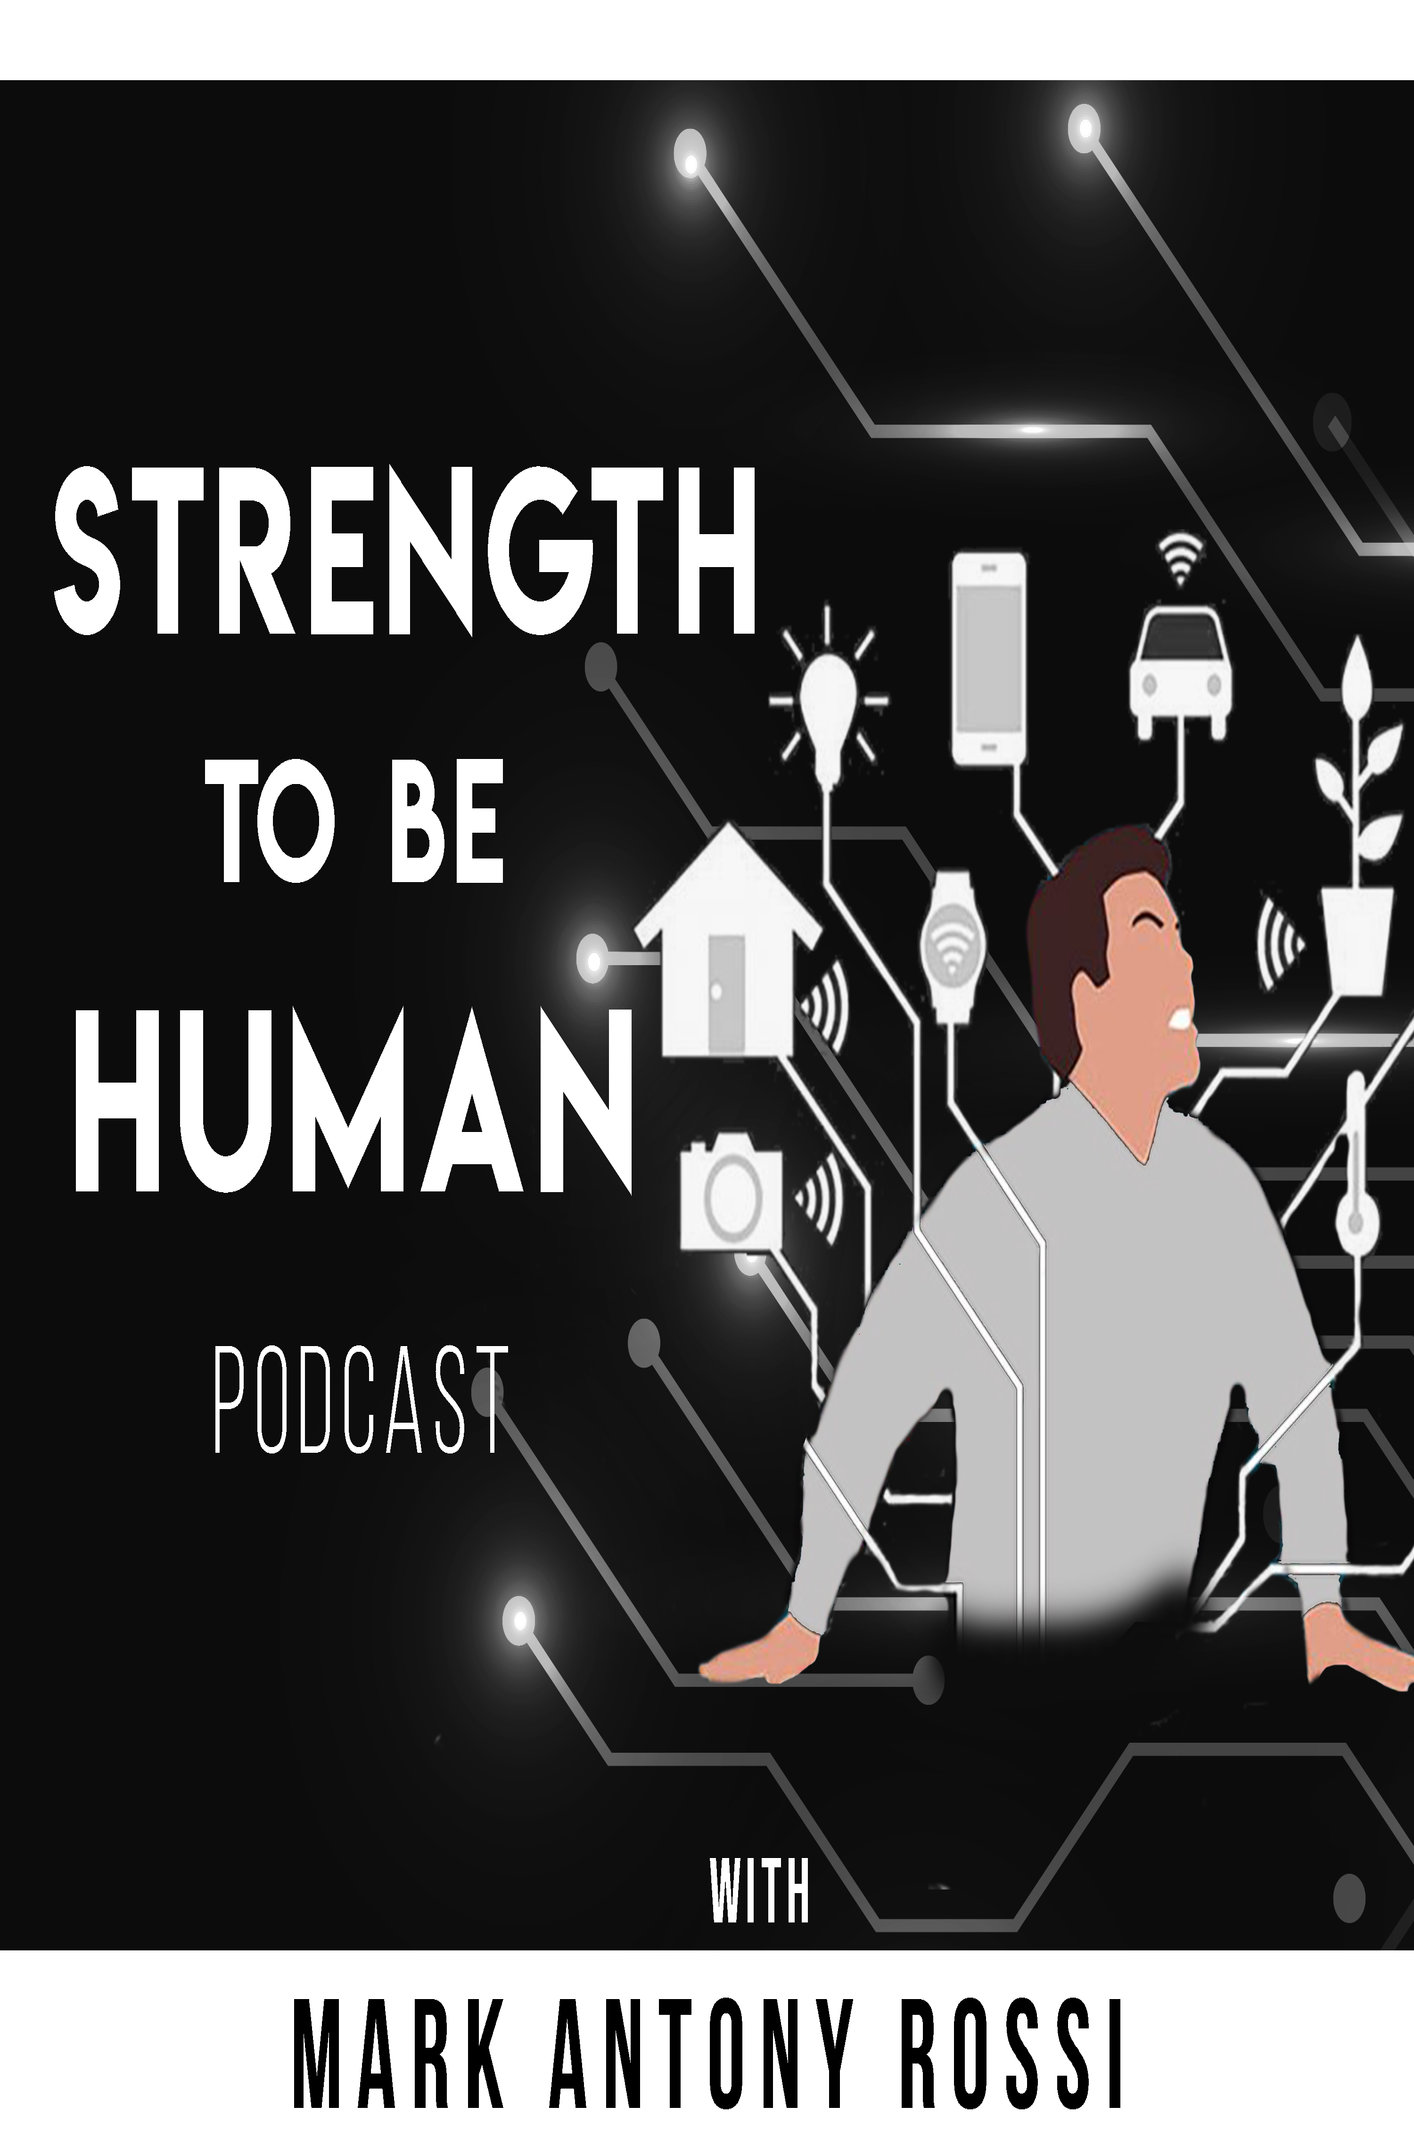 Strength To Be Human